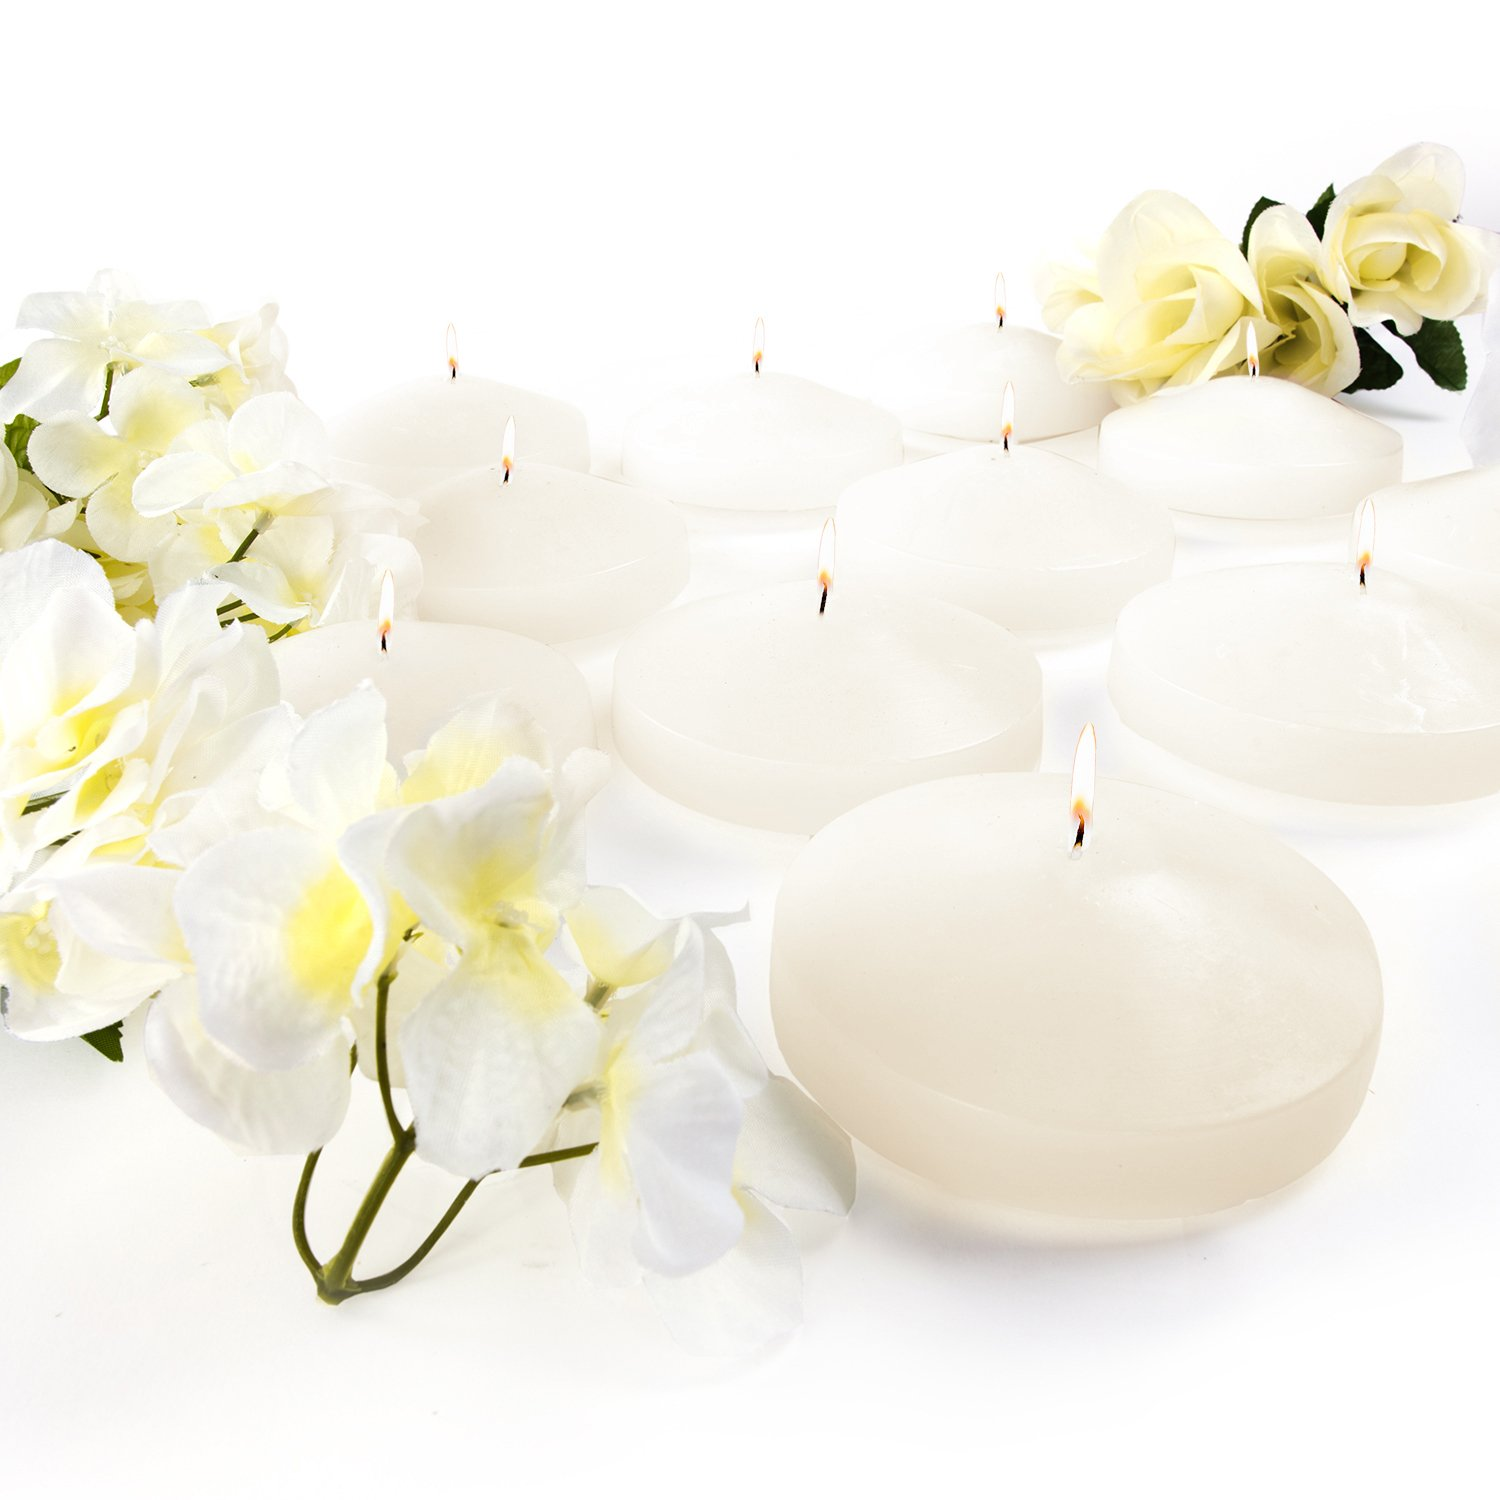 3.25'' White Unscented Dripless Floating Tealight Shape Candles Set (24 Pack) (Ivory)